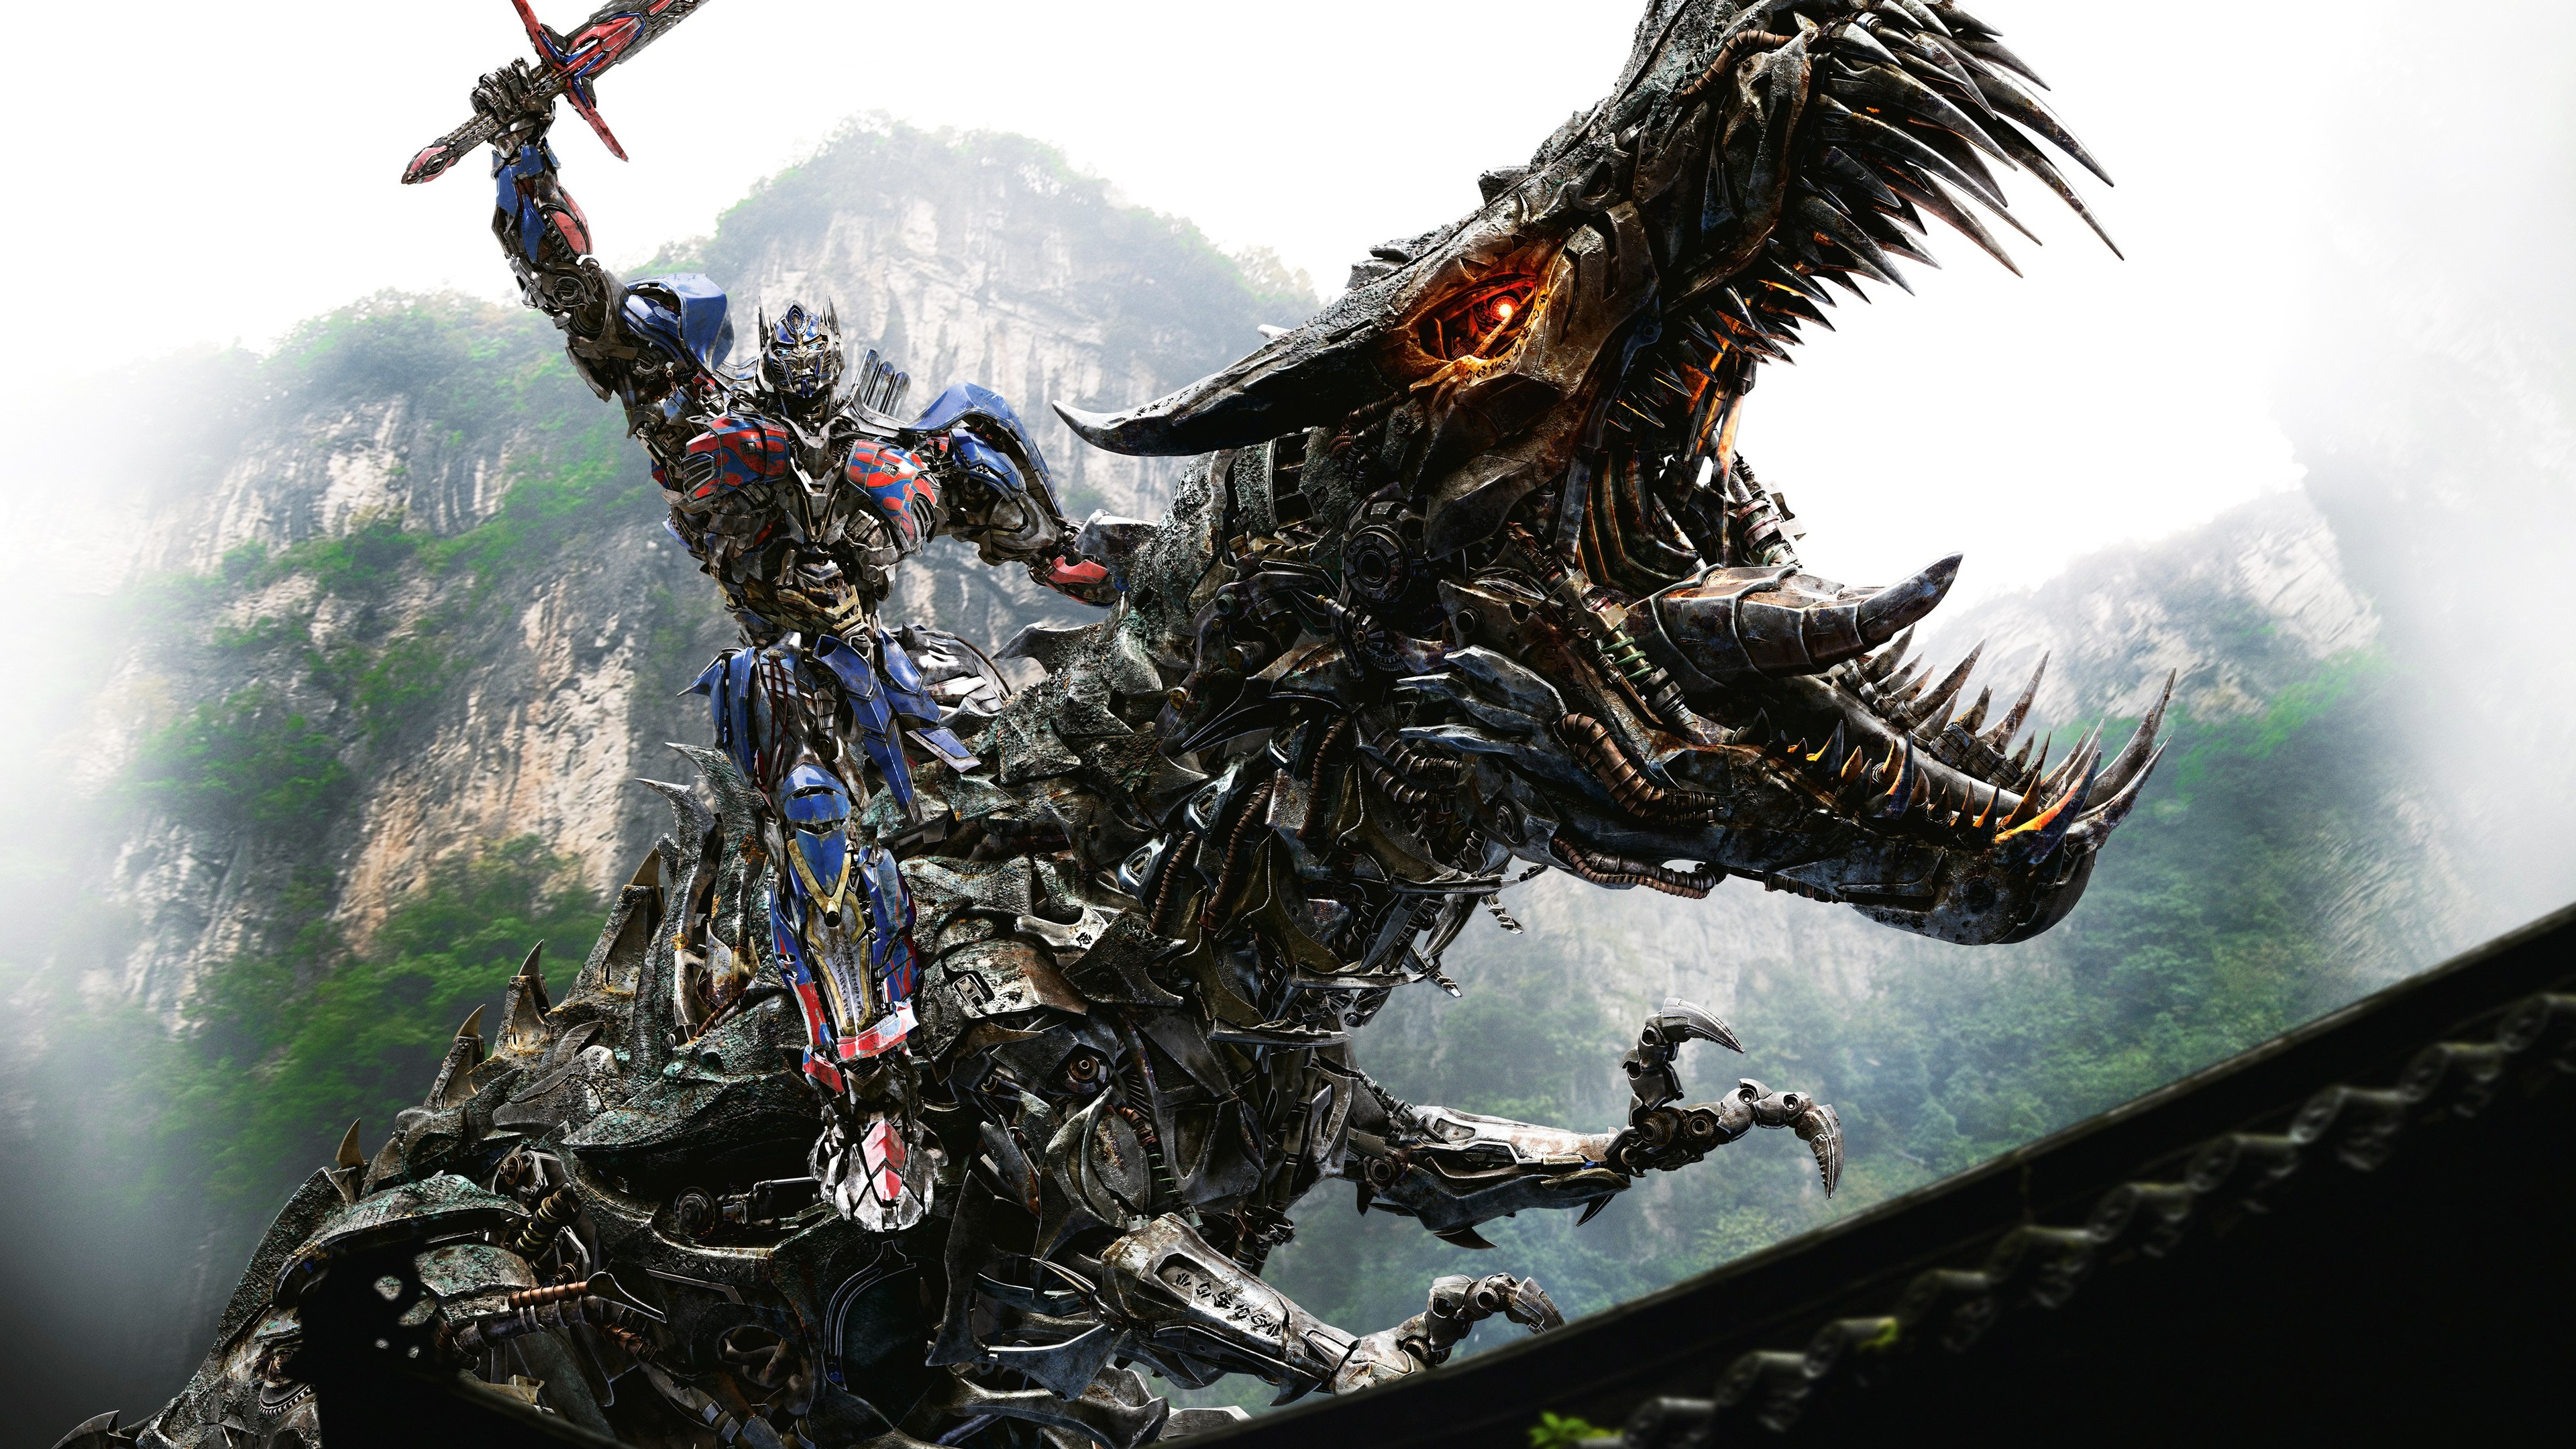 optimus prime on dinobot hd 4k wallpaper